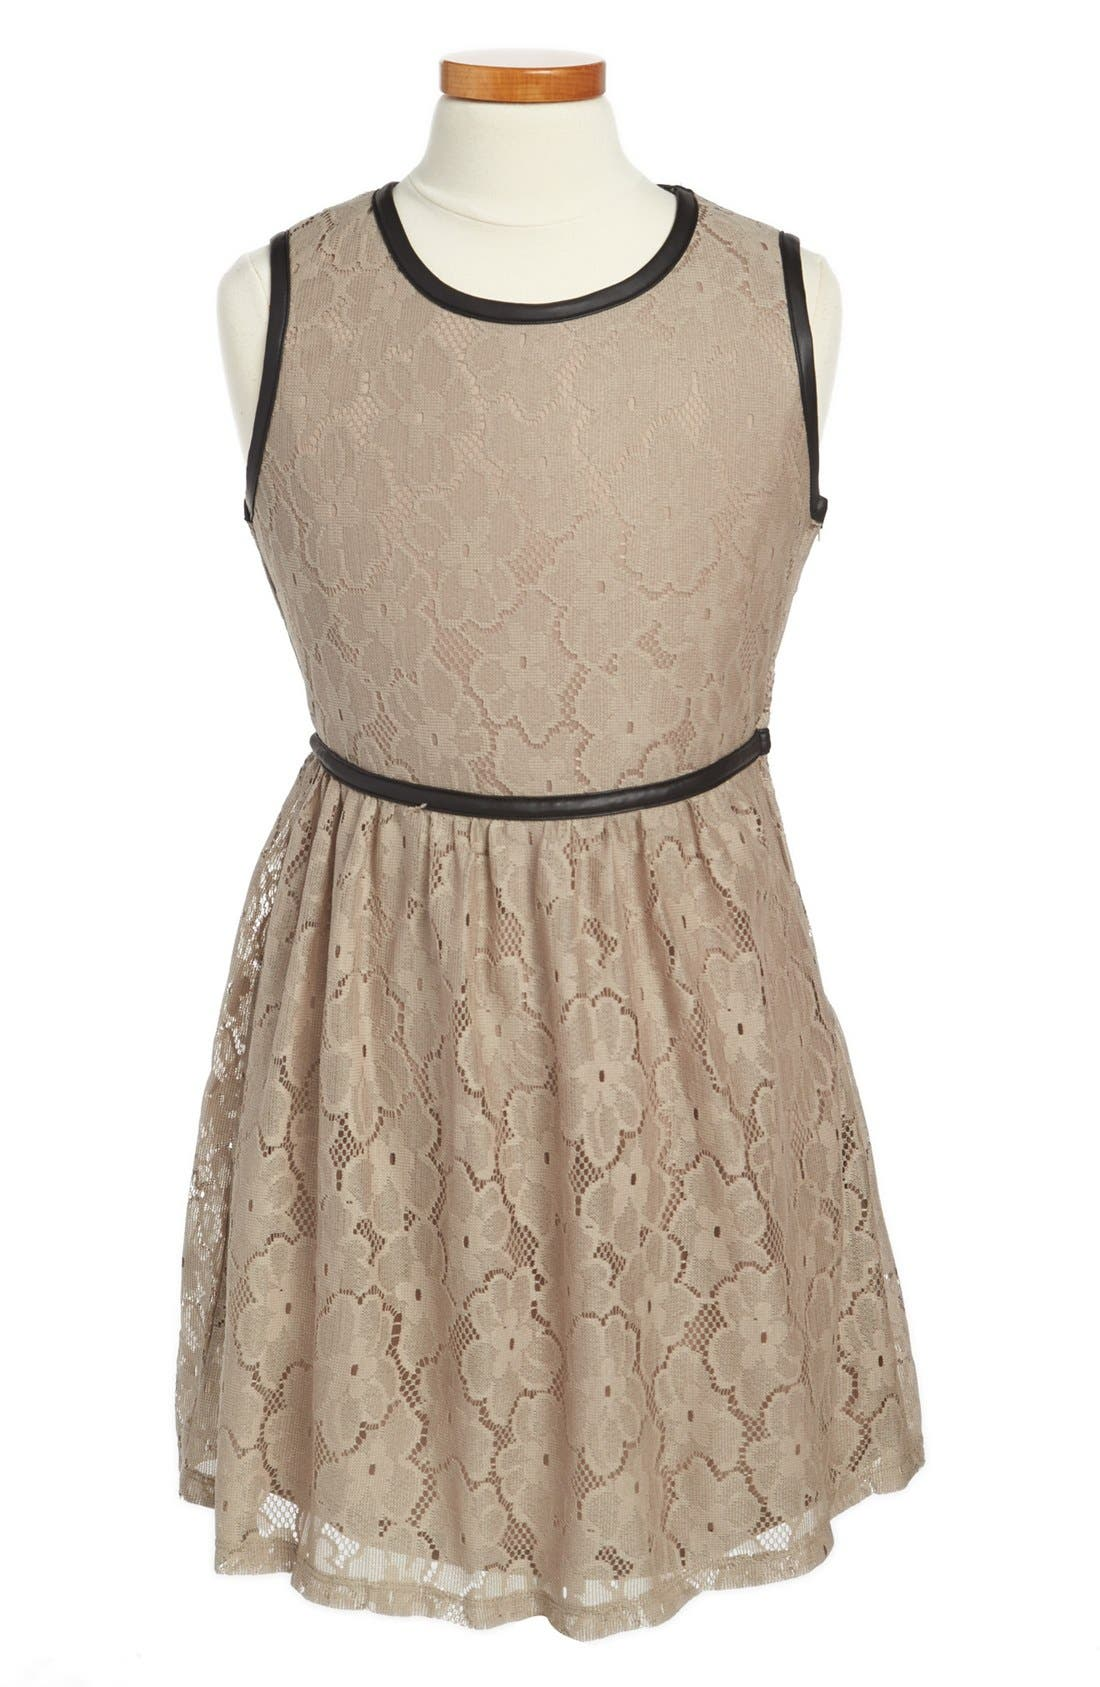 Main Image - Mia Chica Lace and Faux Leather Dress (Big Girls)